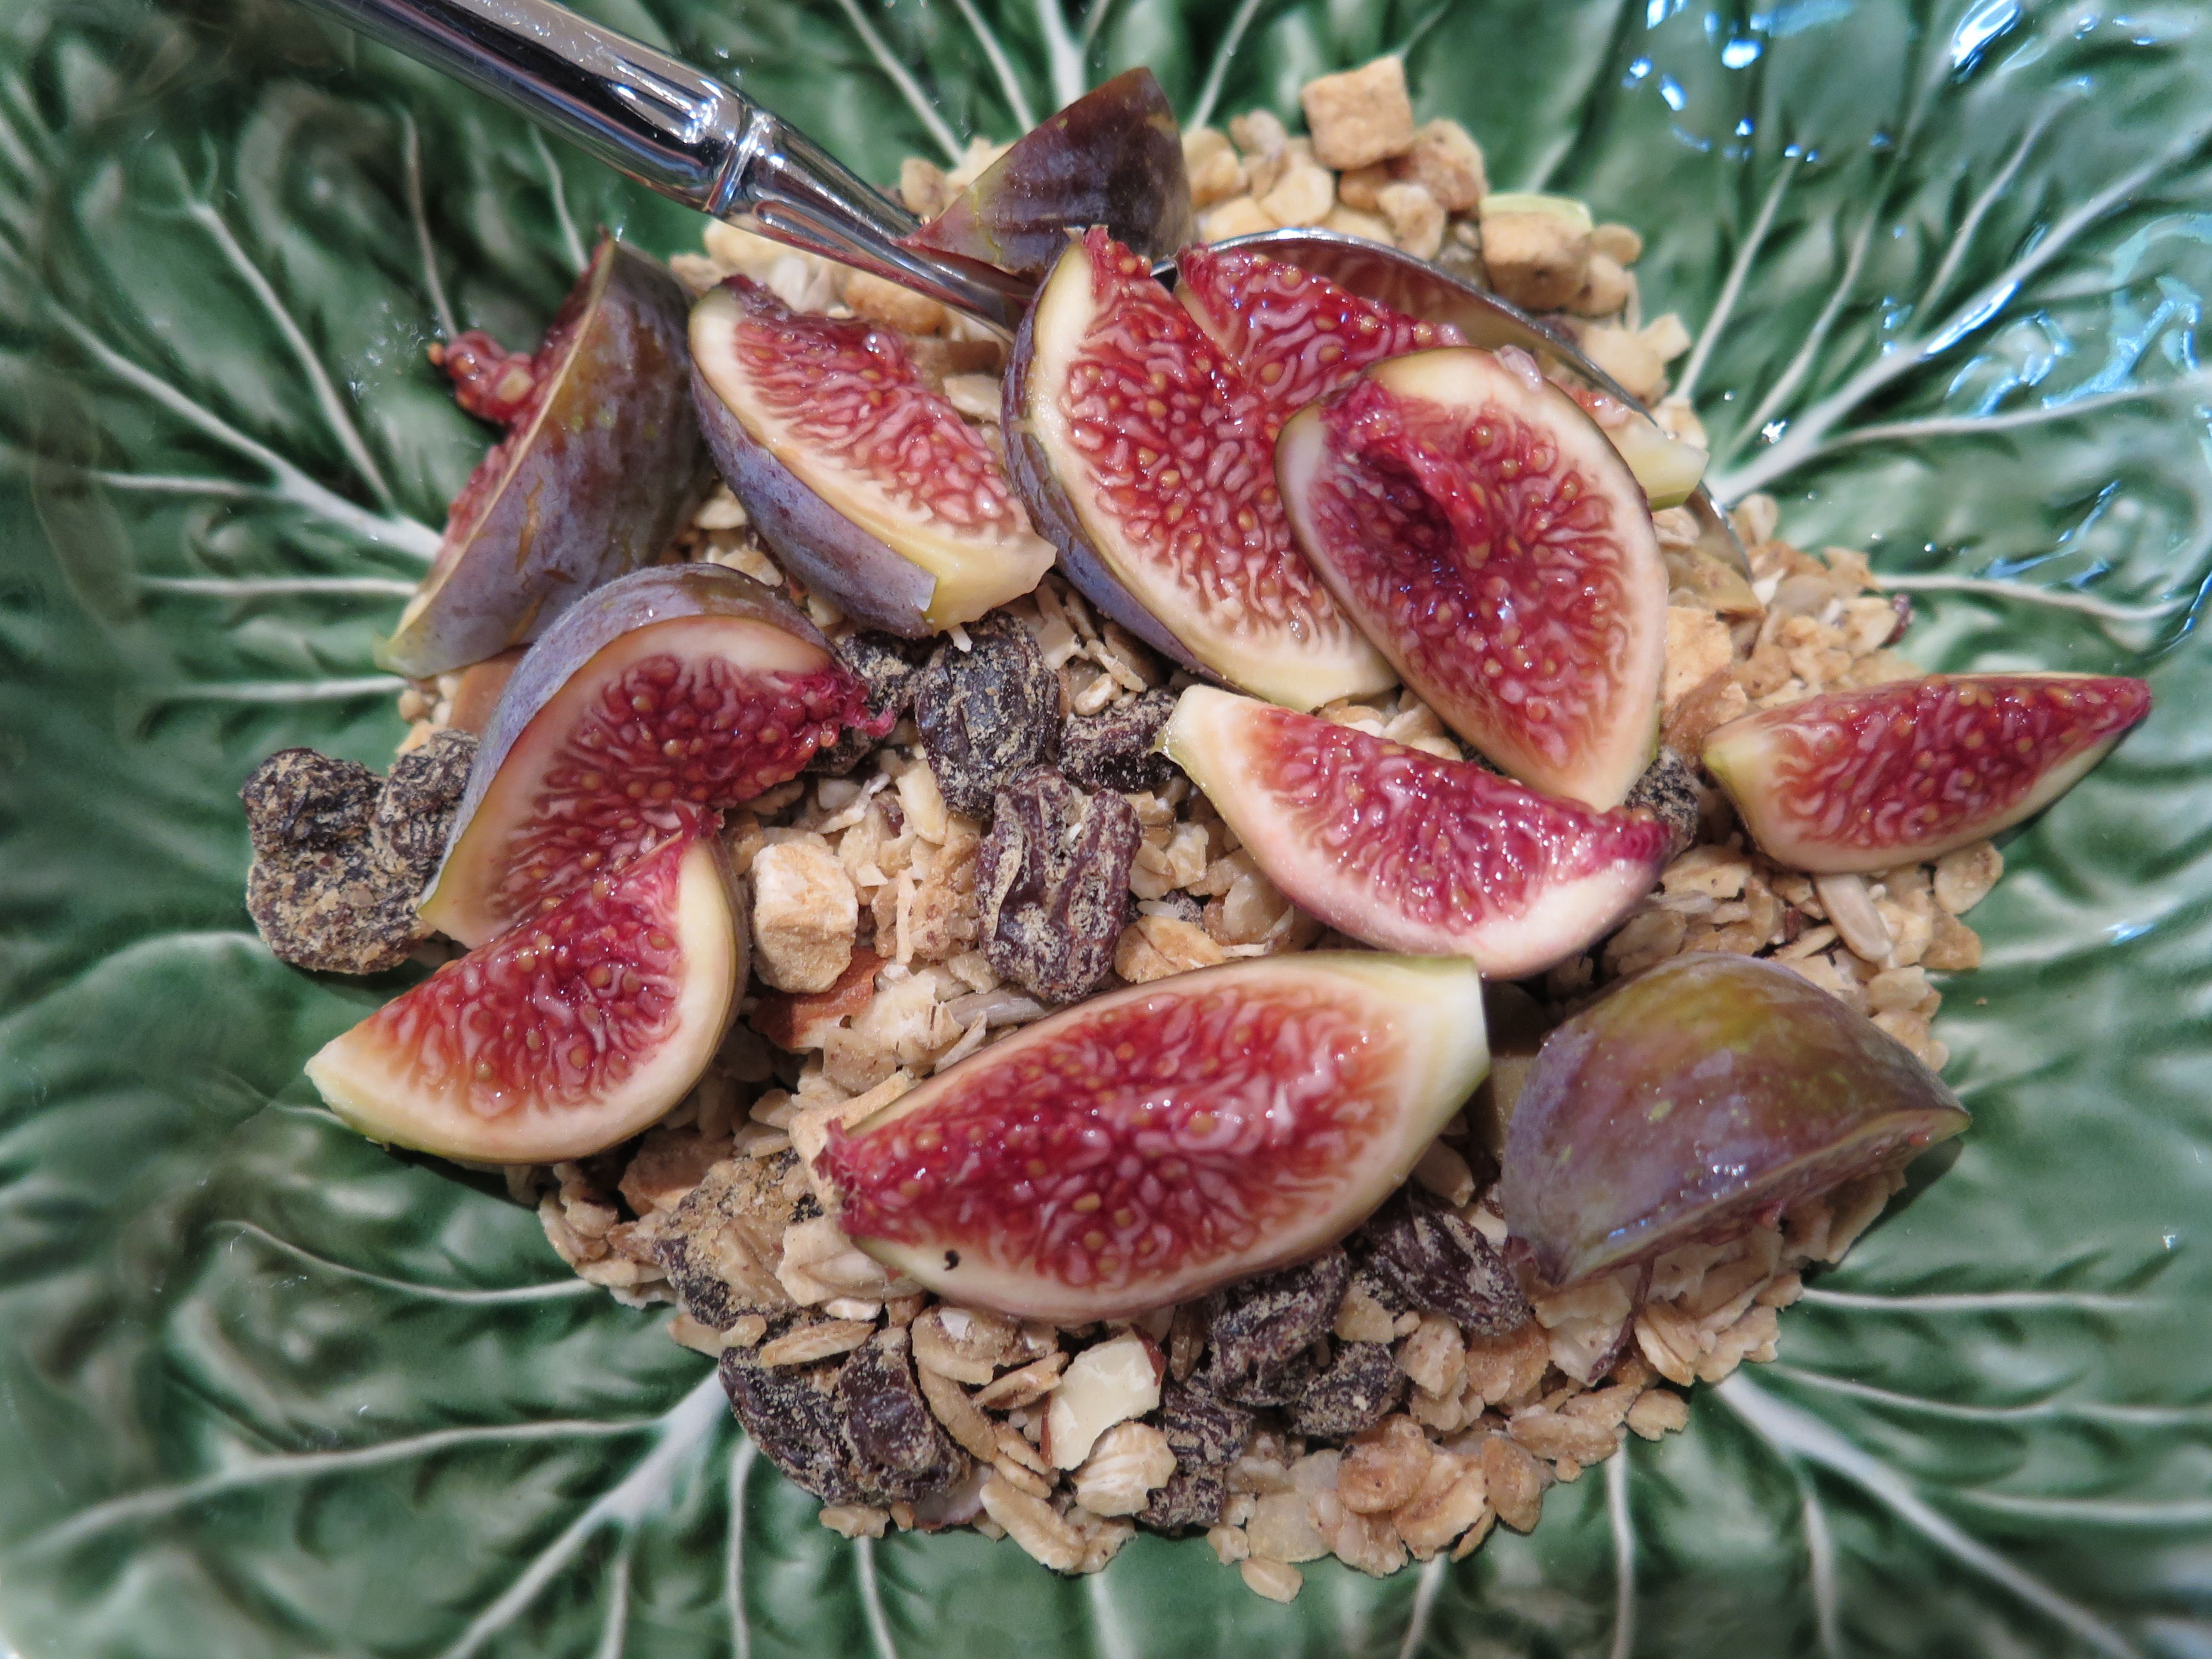 Breakfast in the Napa Valley: Celeste figs and homemade granola.